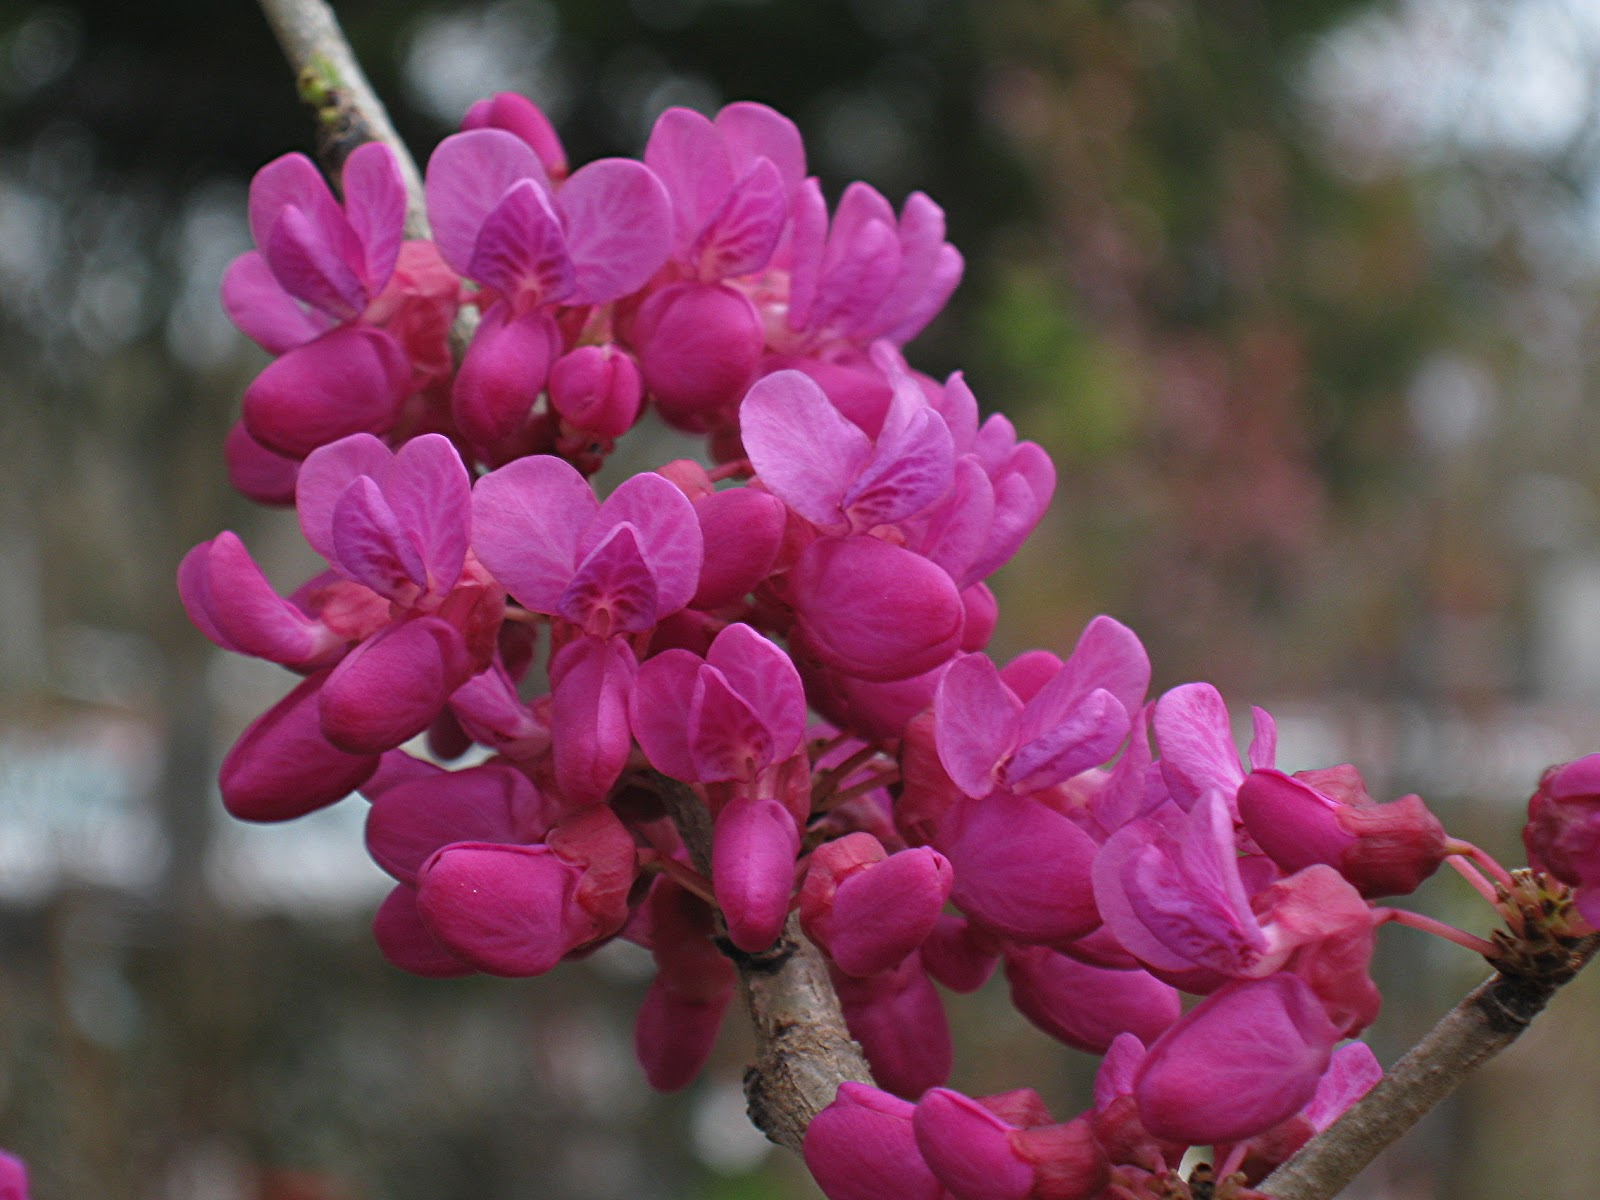 Redwood Barn Nursery Lilacs And Redbuds For Spring